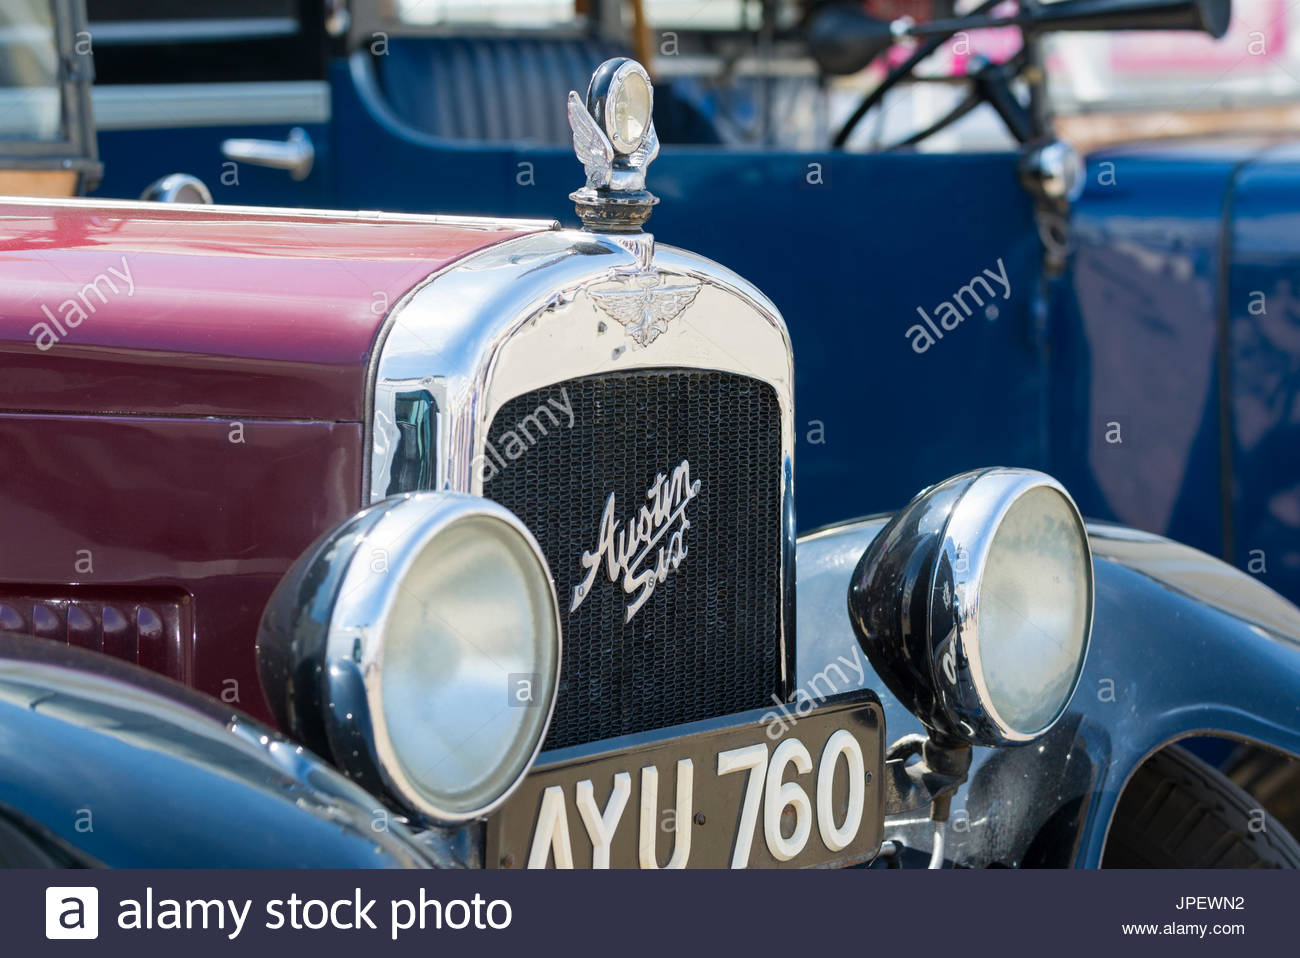 front-of-a-vintage-austin-six-london-taxicab-from-the-1930s-austin-JPEWN2.jpg